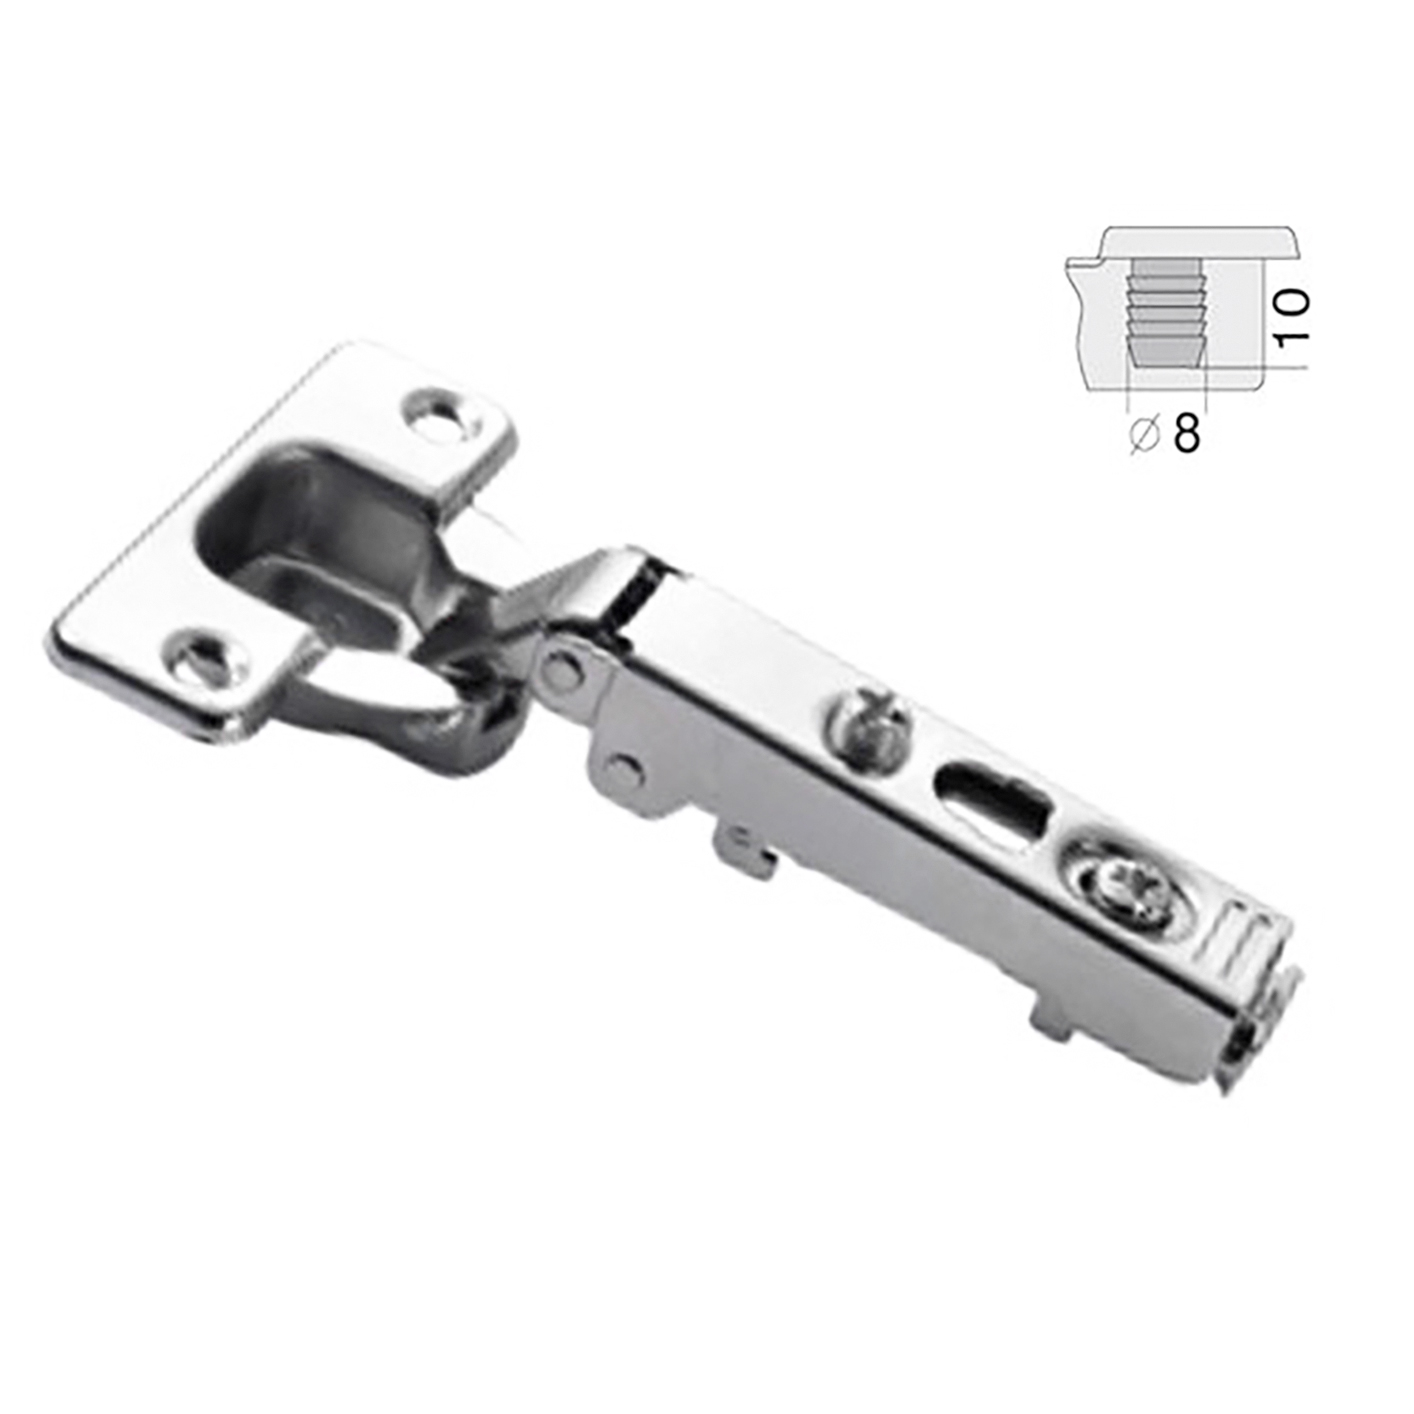 Hinge 110 Full Overlay Clip On 105 A475 Marathon Hardware